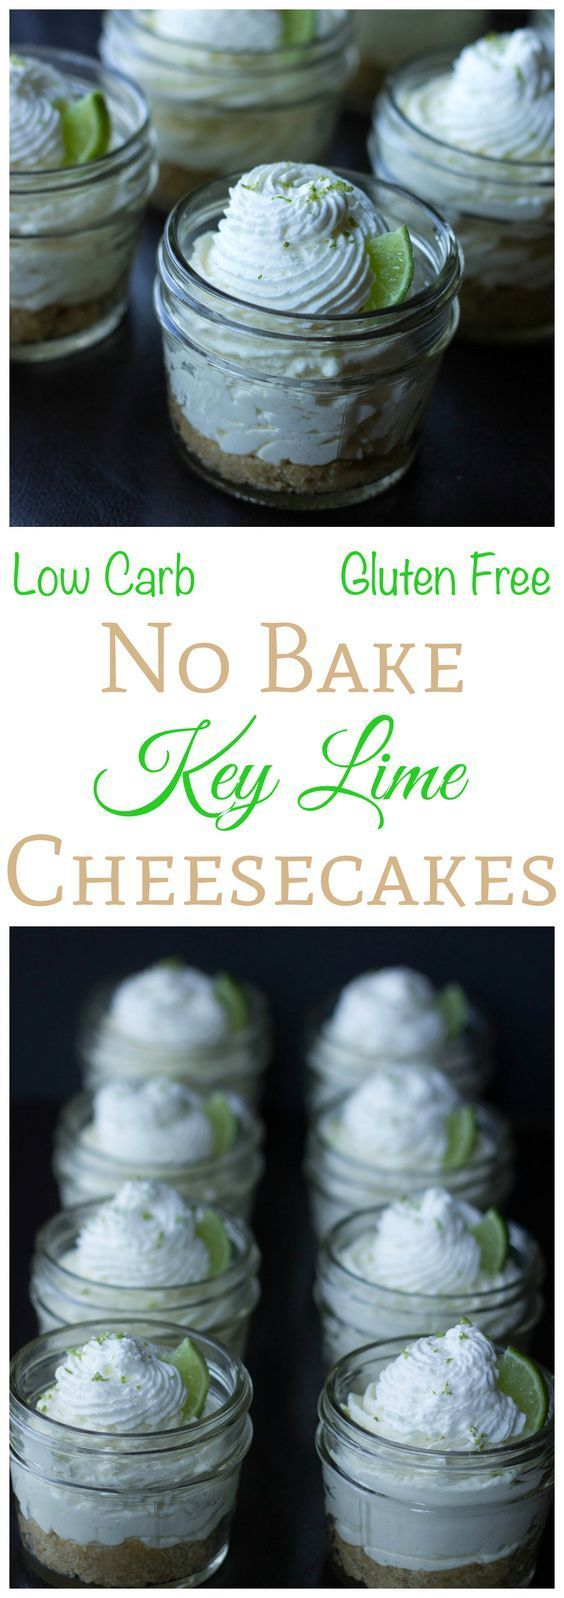 These 4 ounce low carb and gluten free no bake key lime cheesecake in a jar desserts are perfect for any summer party. They taste just like a key lime pie.